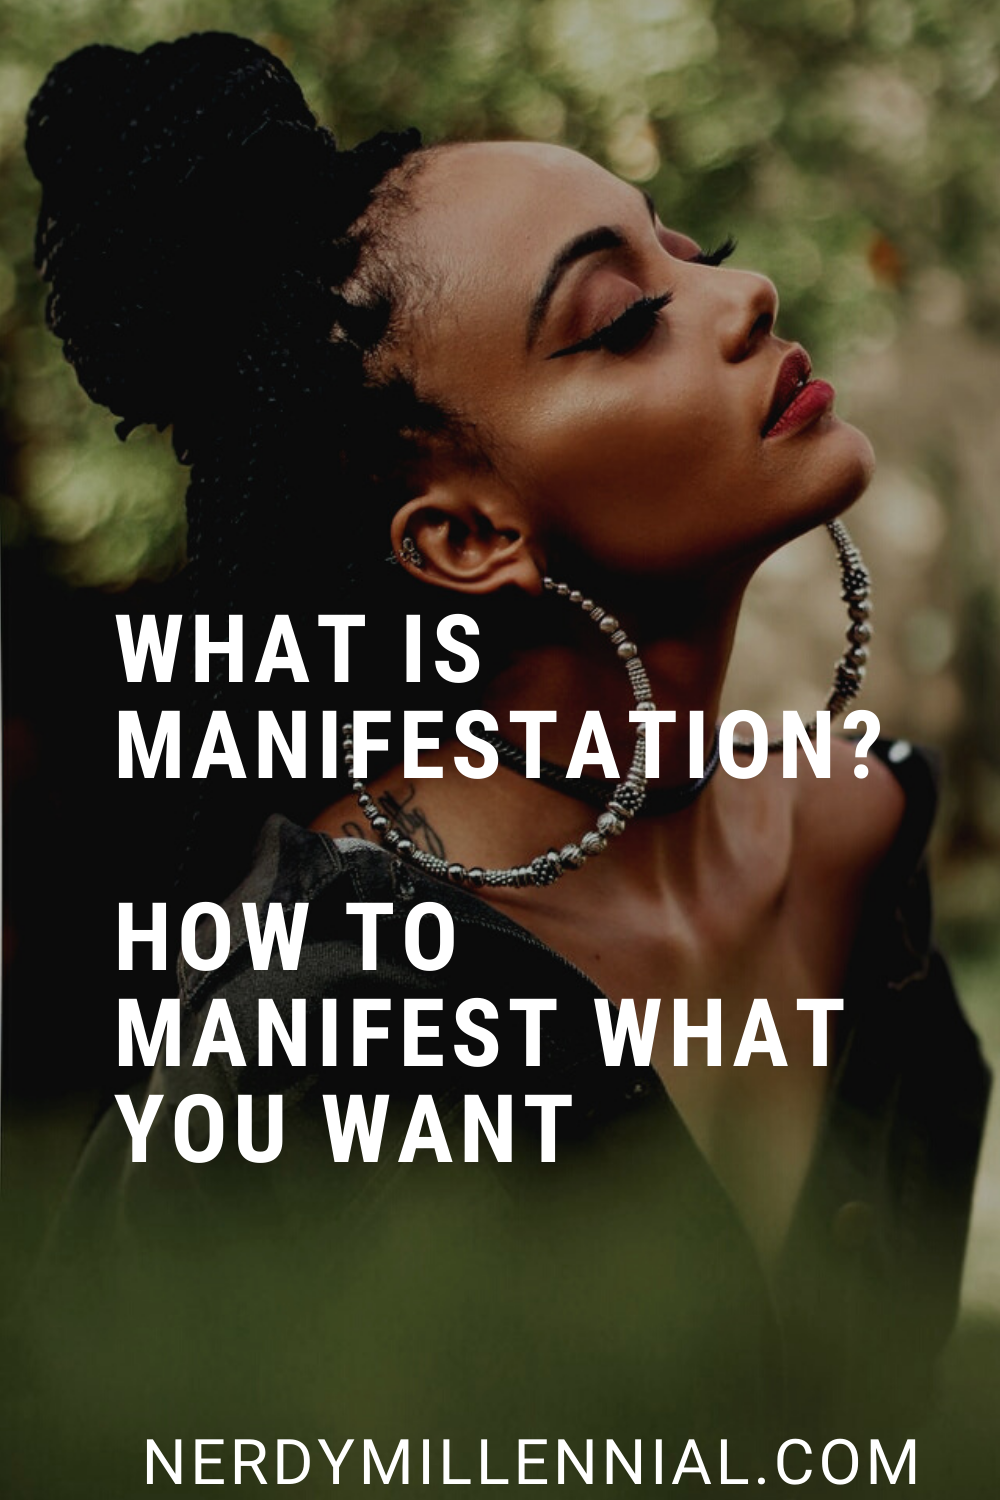 What Is Manifestation? How to Manifest What You Want